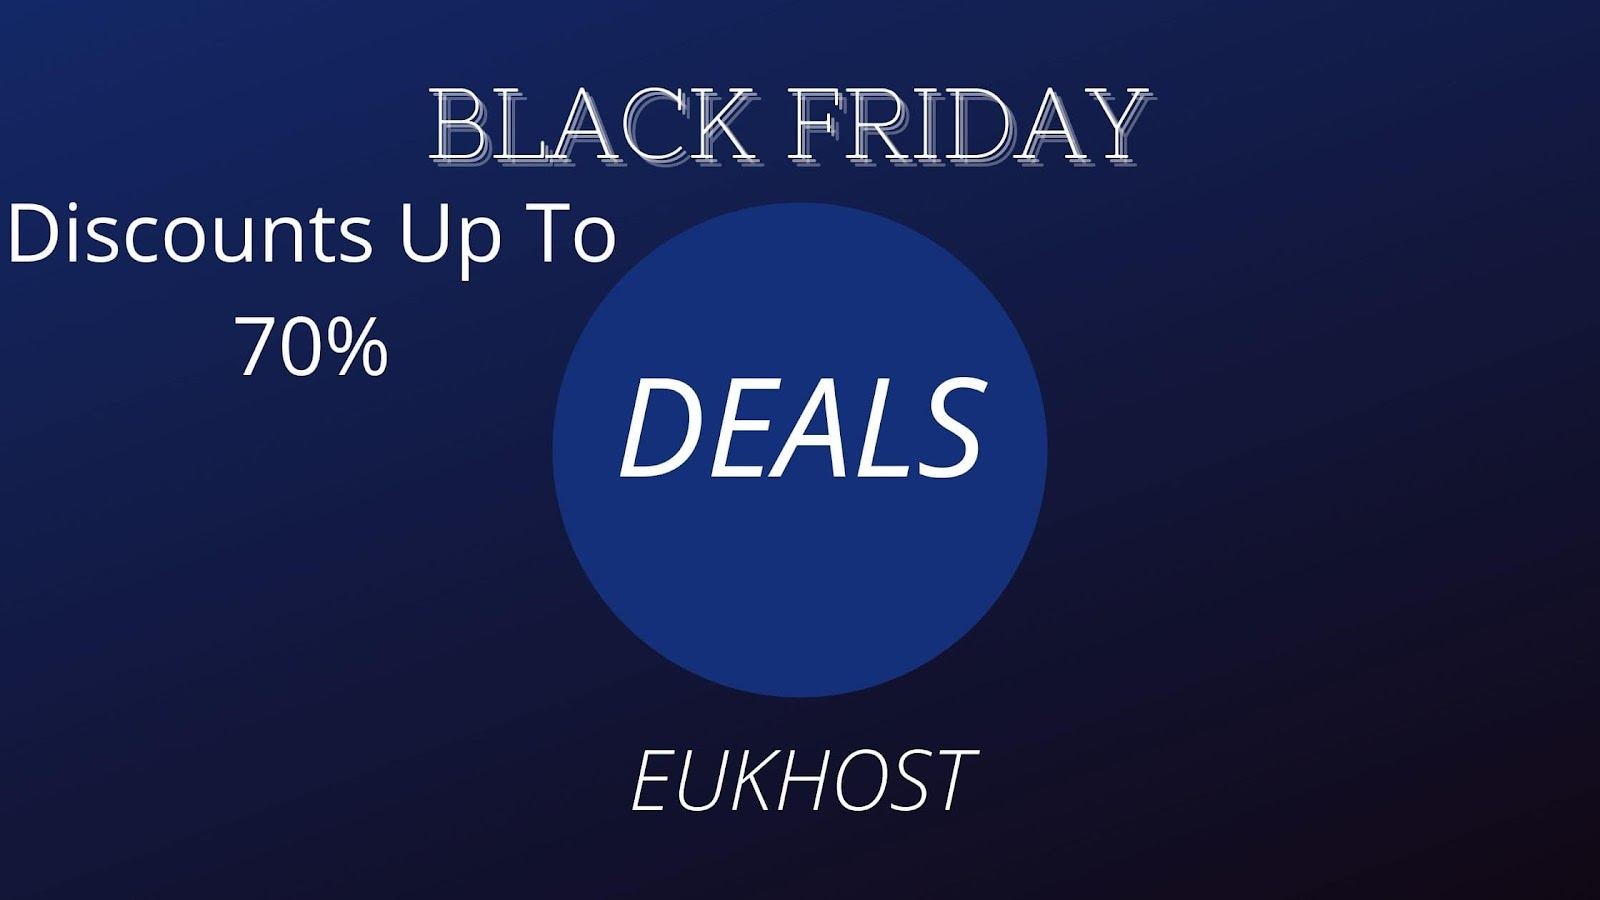 EUKHost: Discounts Up To 70%